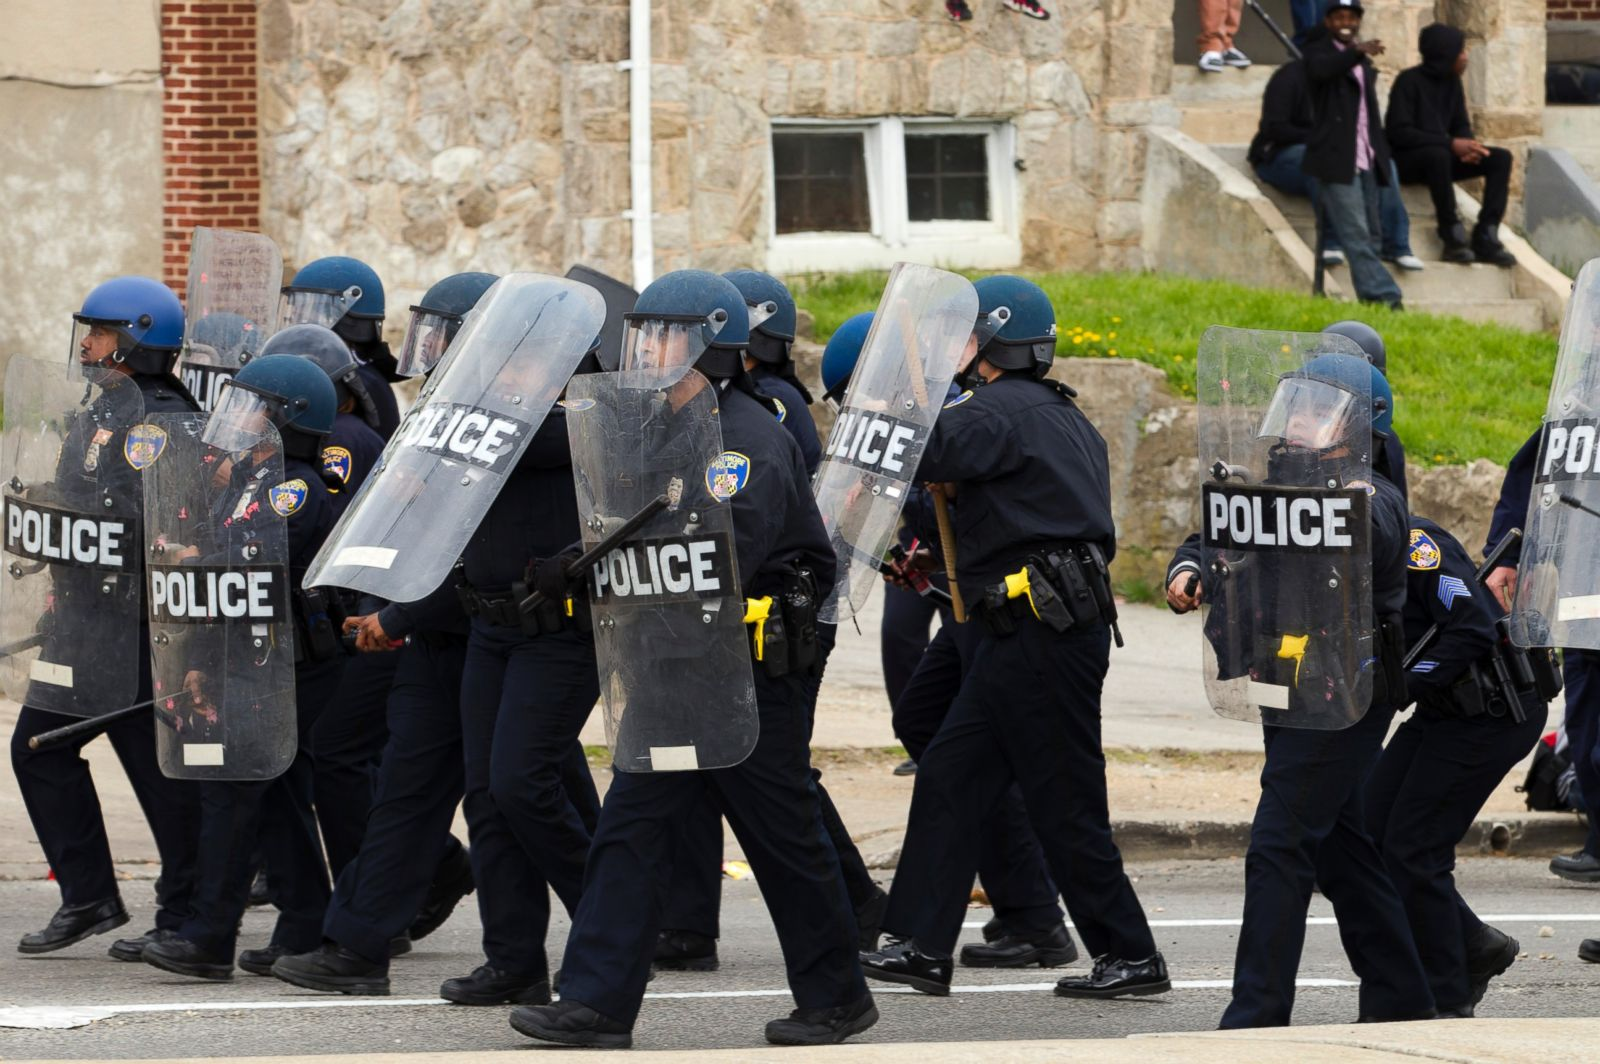 Baltimore police officers in riot gear push protestors back along - Baltimore Police Officers In Riot Gear Push Protestors Back Along 51